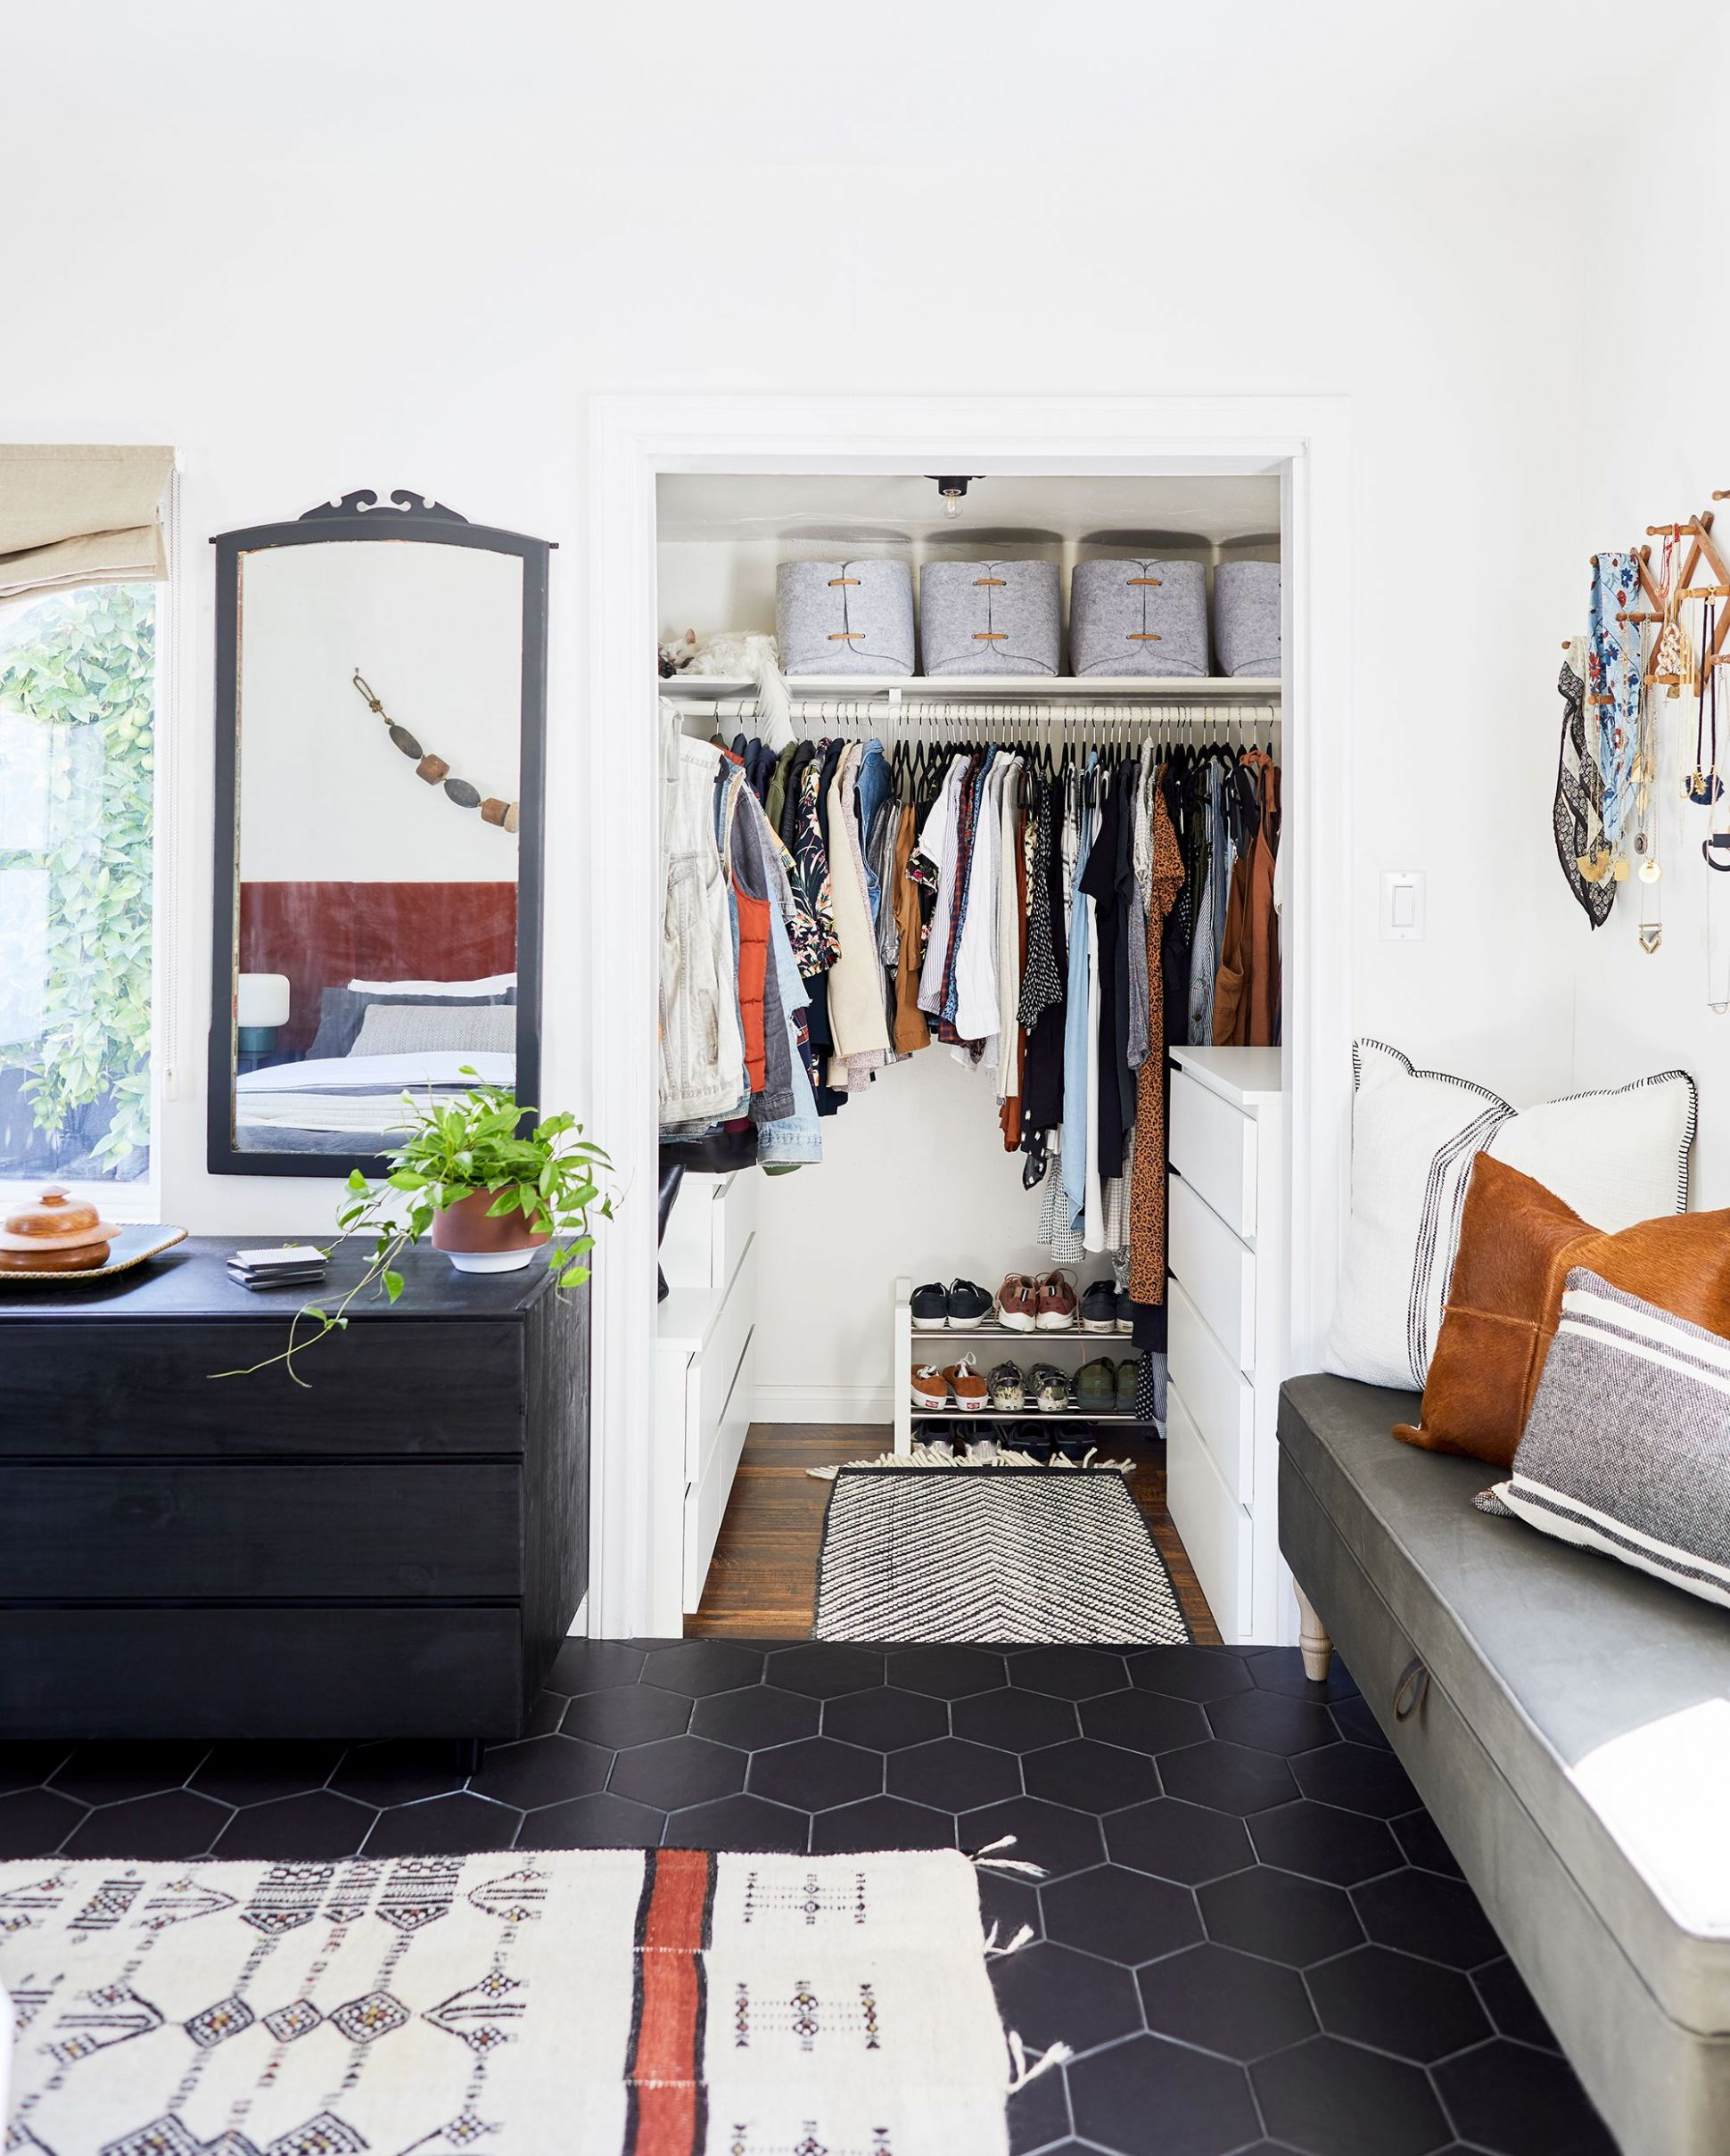 11 Best Small Closet Organization Ideas - Storage Tip for Small ..